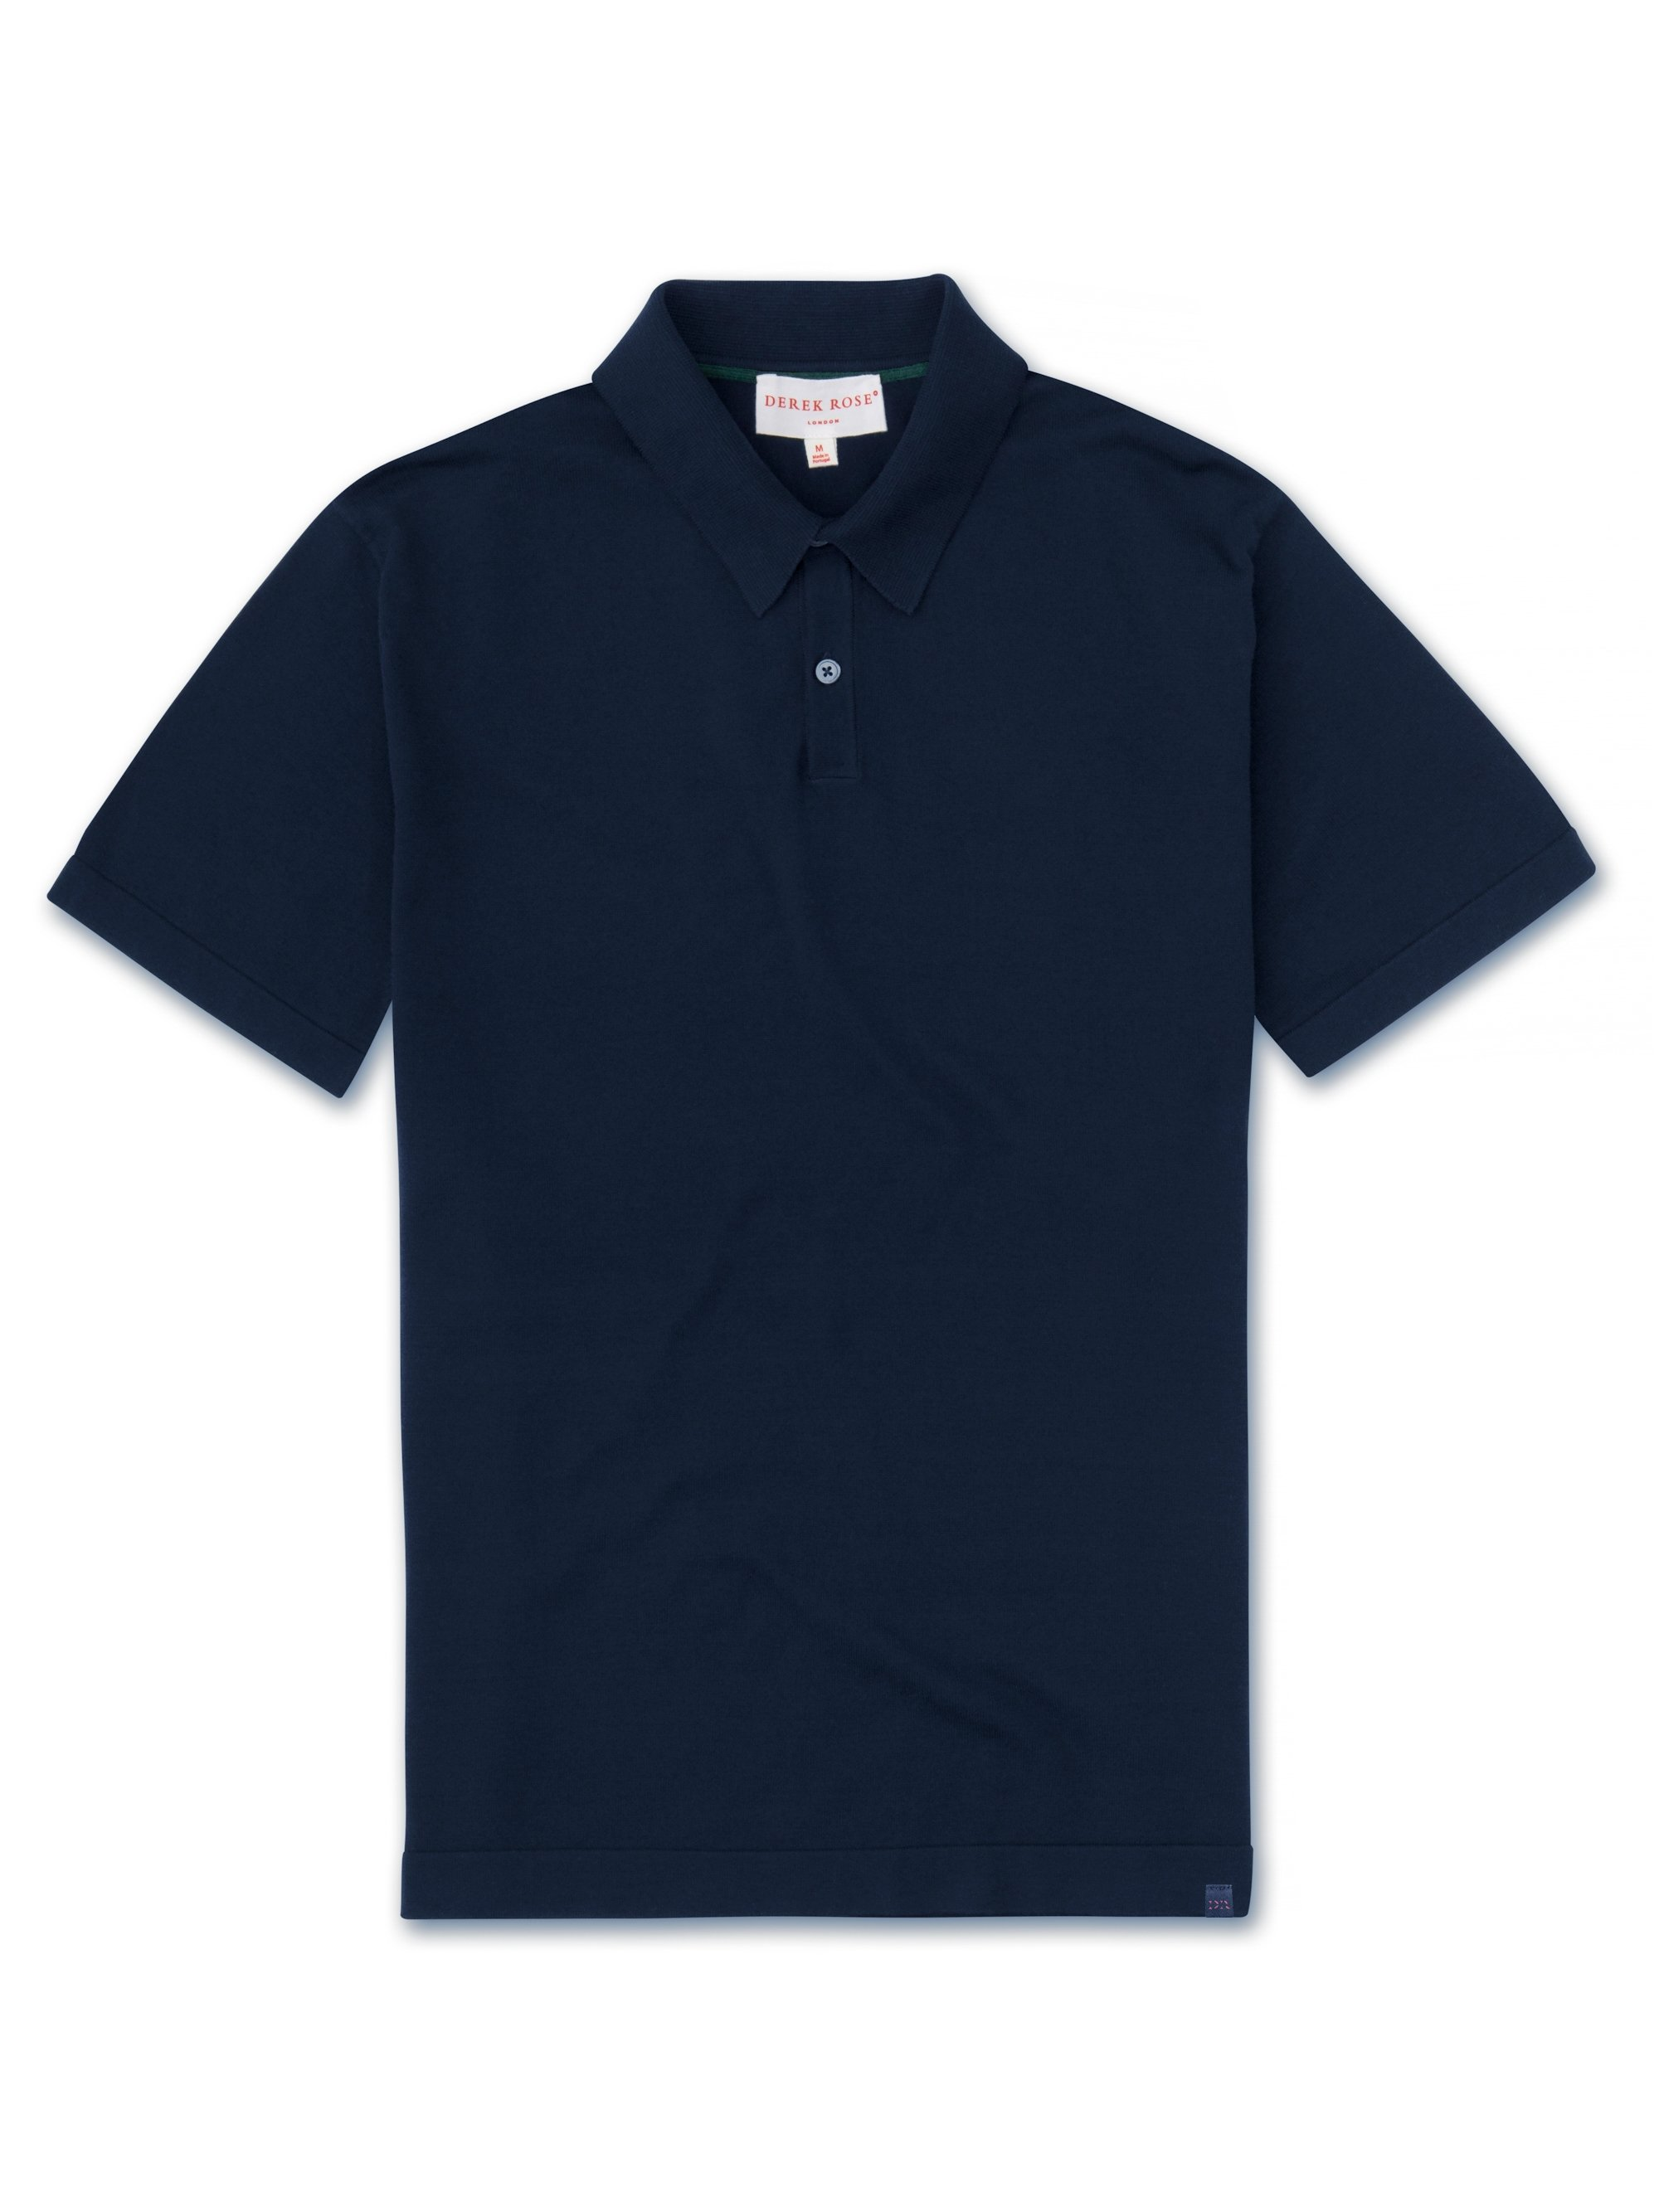 Men's Short Sleeve Polo Shirt Jacob Sea Island Cotton Navy